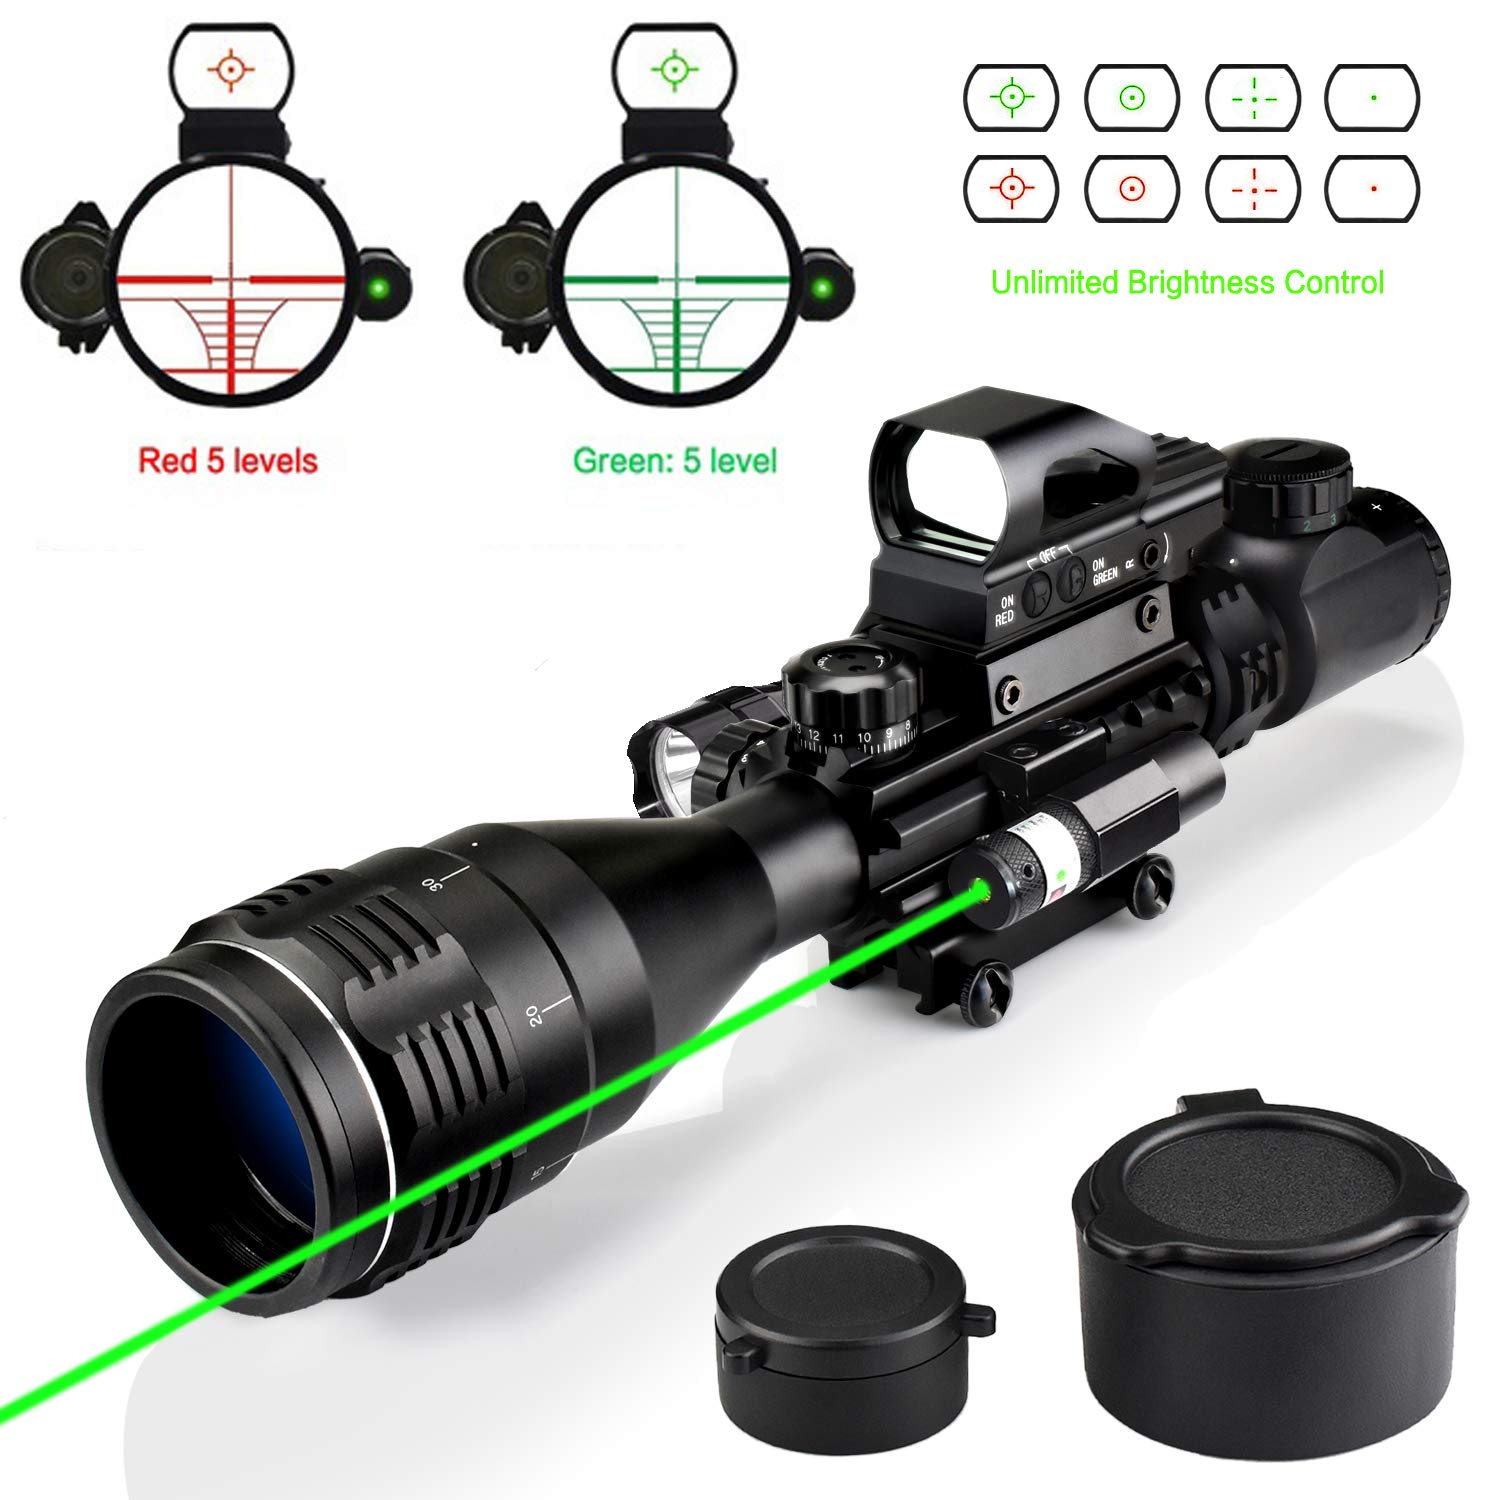 Rifle Scope Combo C4-12x50EG Dual Illuminated with Green Laser sight 4 Holographic Reticle Red/Green Dot for Weaver/Rail Mount by XopingABC